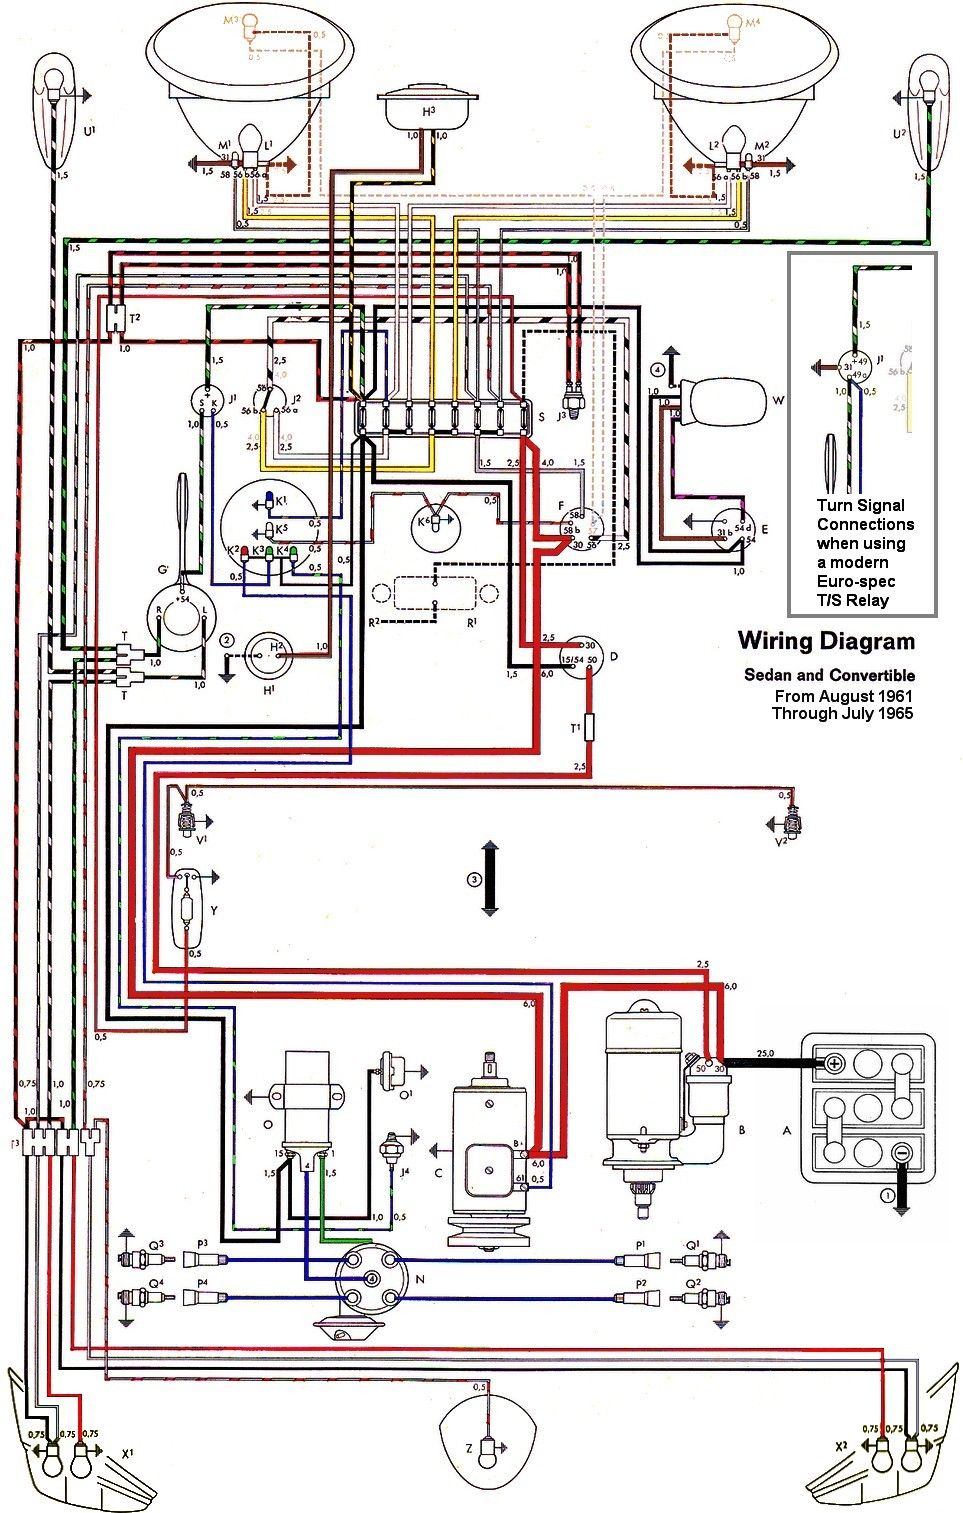 wiring diagram vw beetle sedan and convertible 1961 1965 vw in rh pinterest  com 1965 volkswagen wiring diagram VW Beetle Wiring Diagram